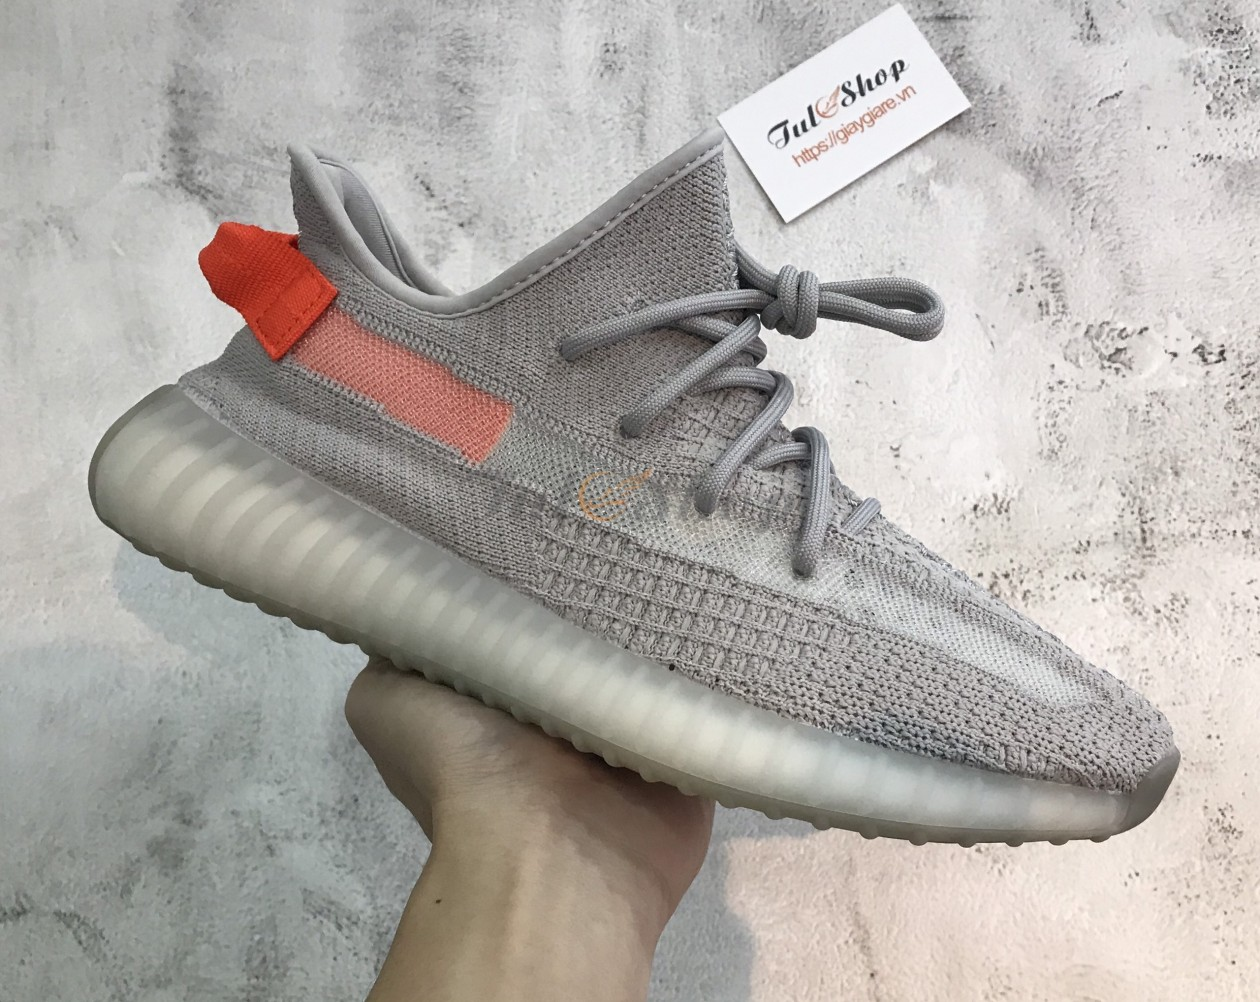 Adidas Yeezy 350 V2 Tail Light (Tailgate) Nam Nữ 1:1